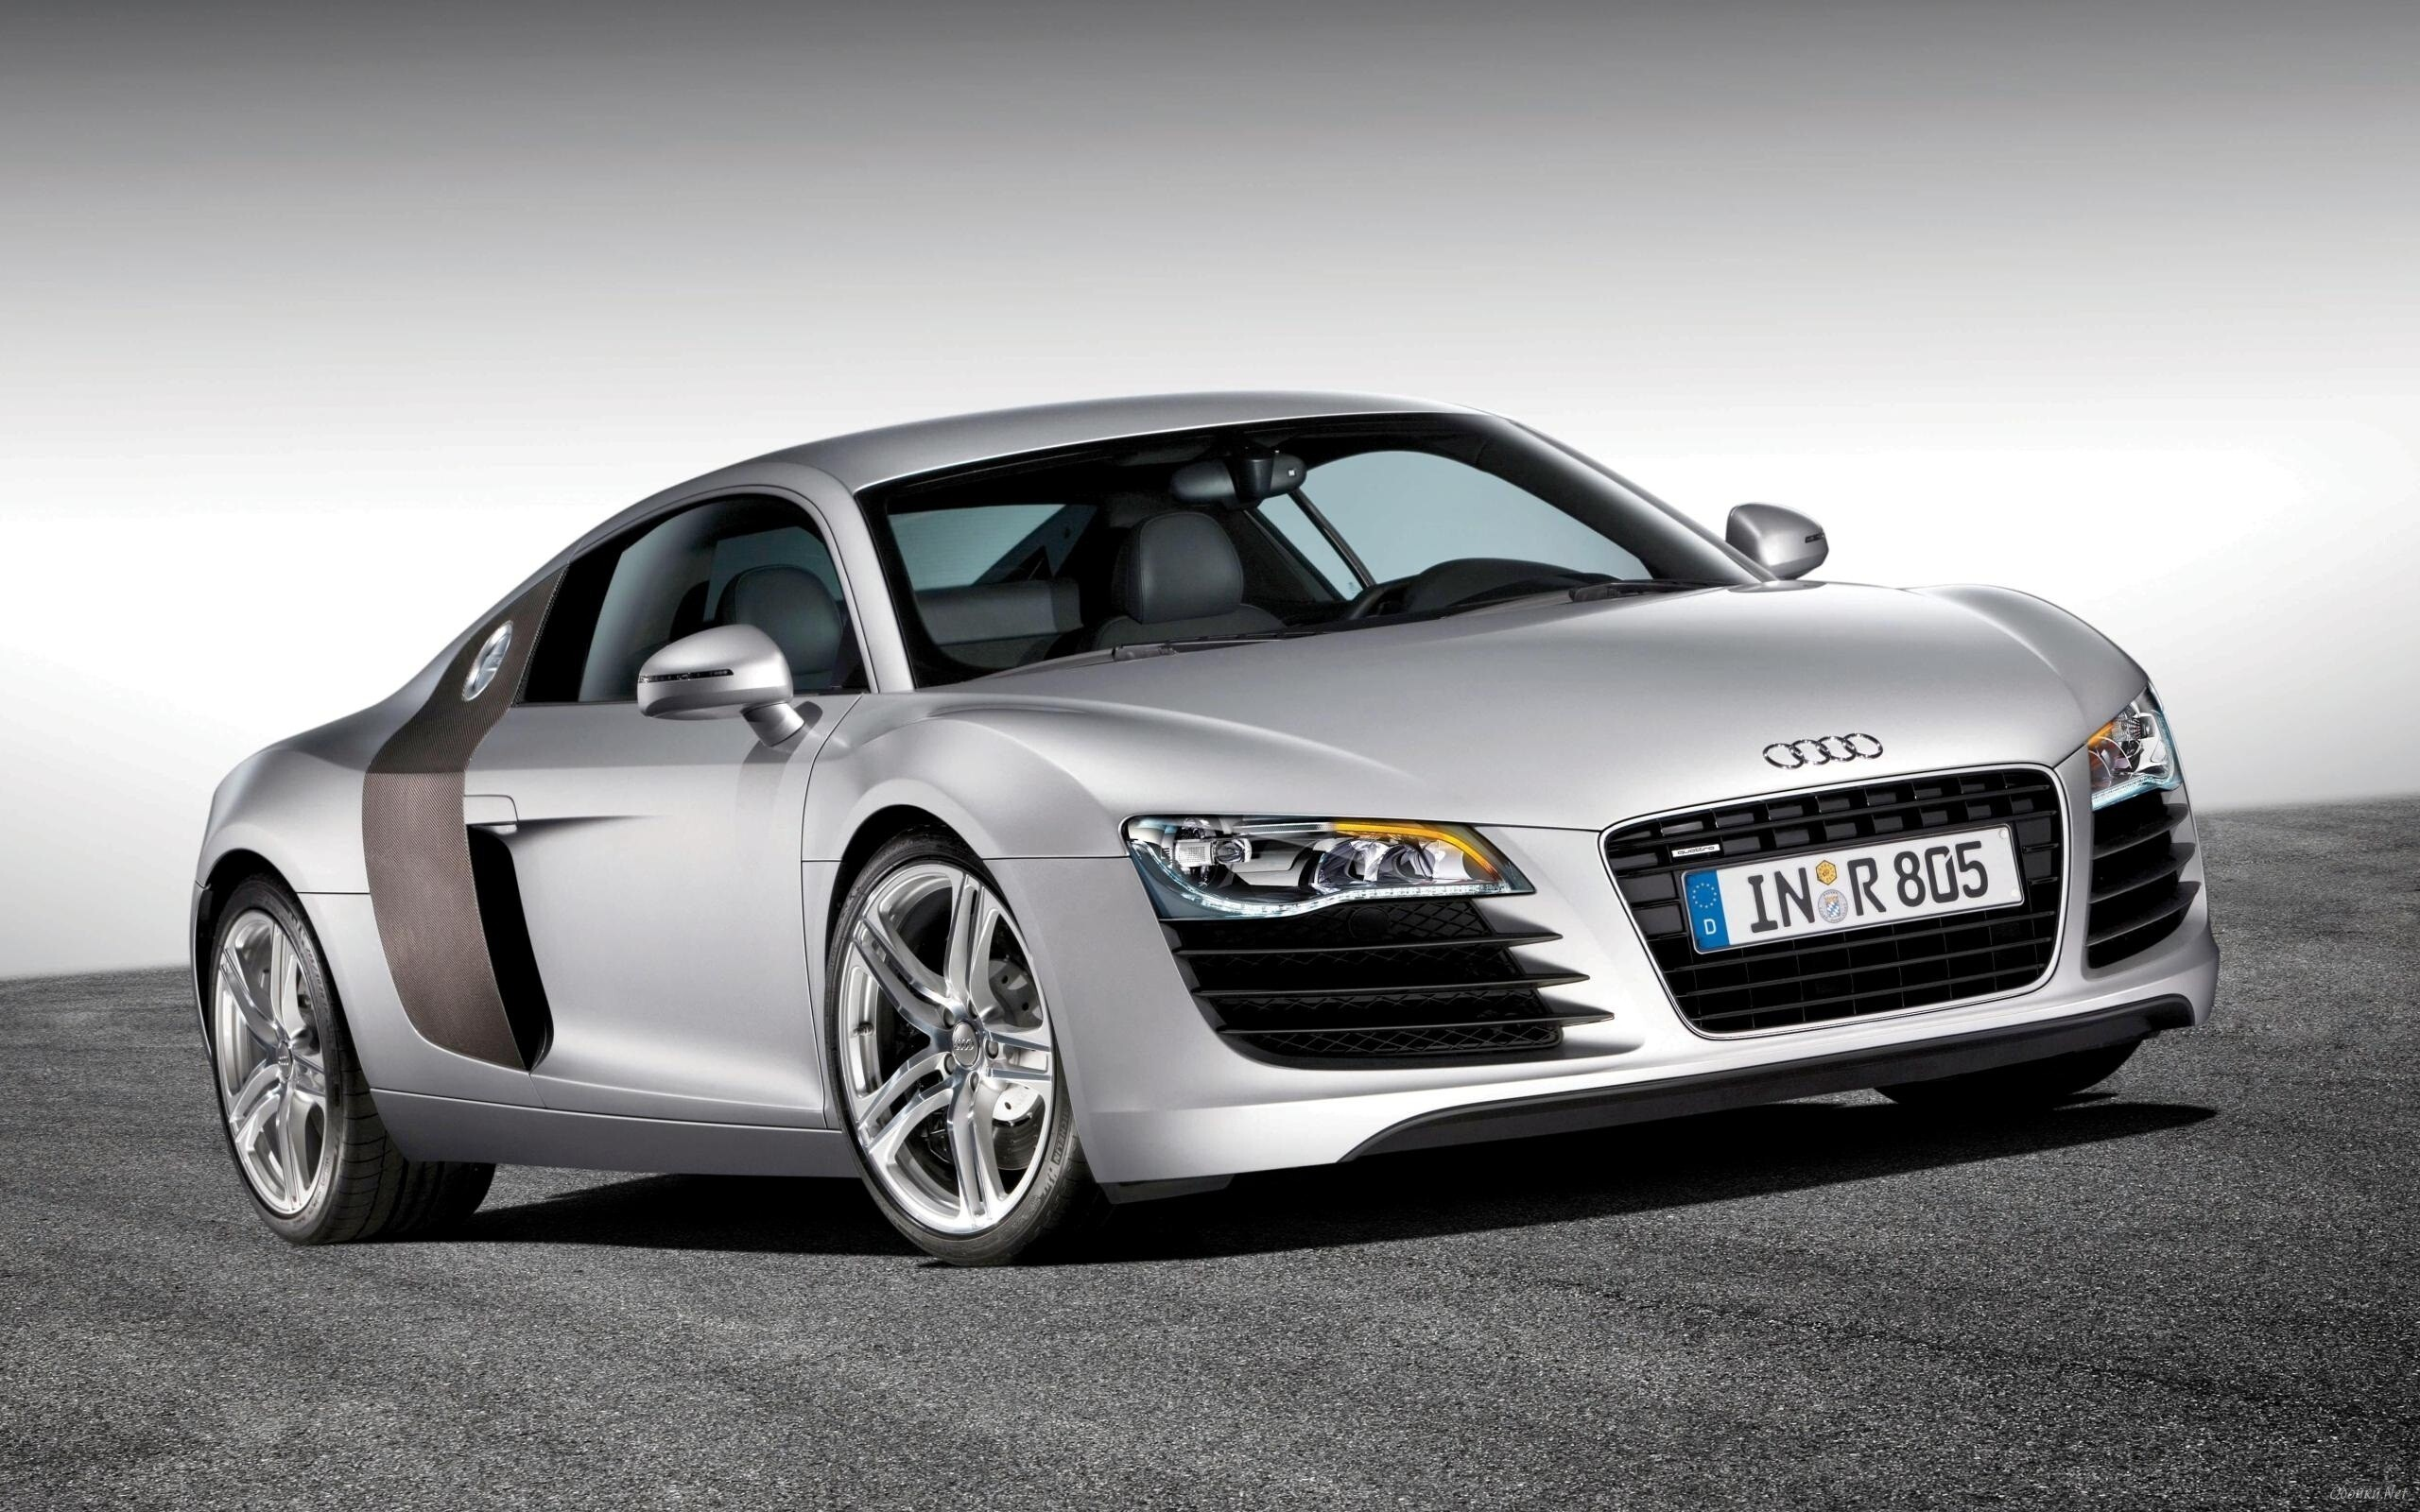 Audi R8 Cars Wallpapers | HD Wallpapers